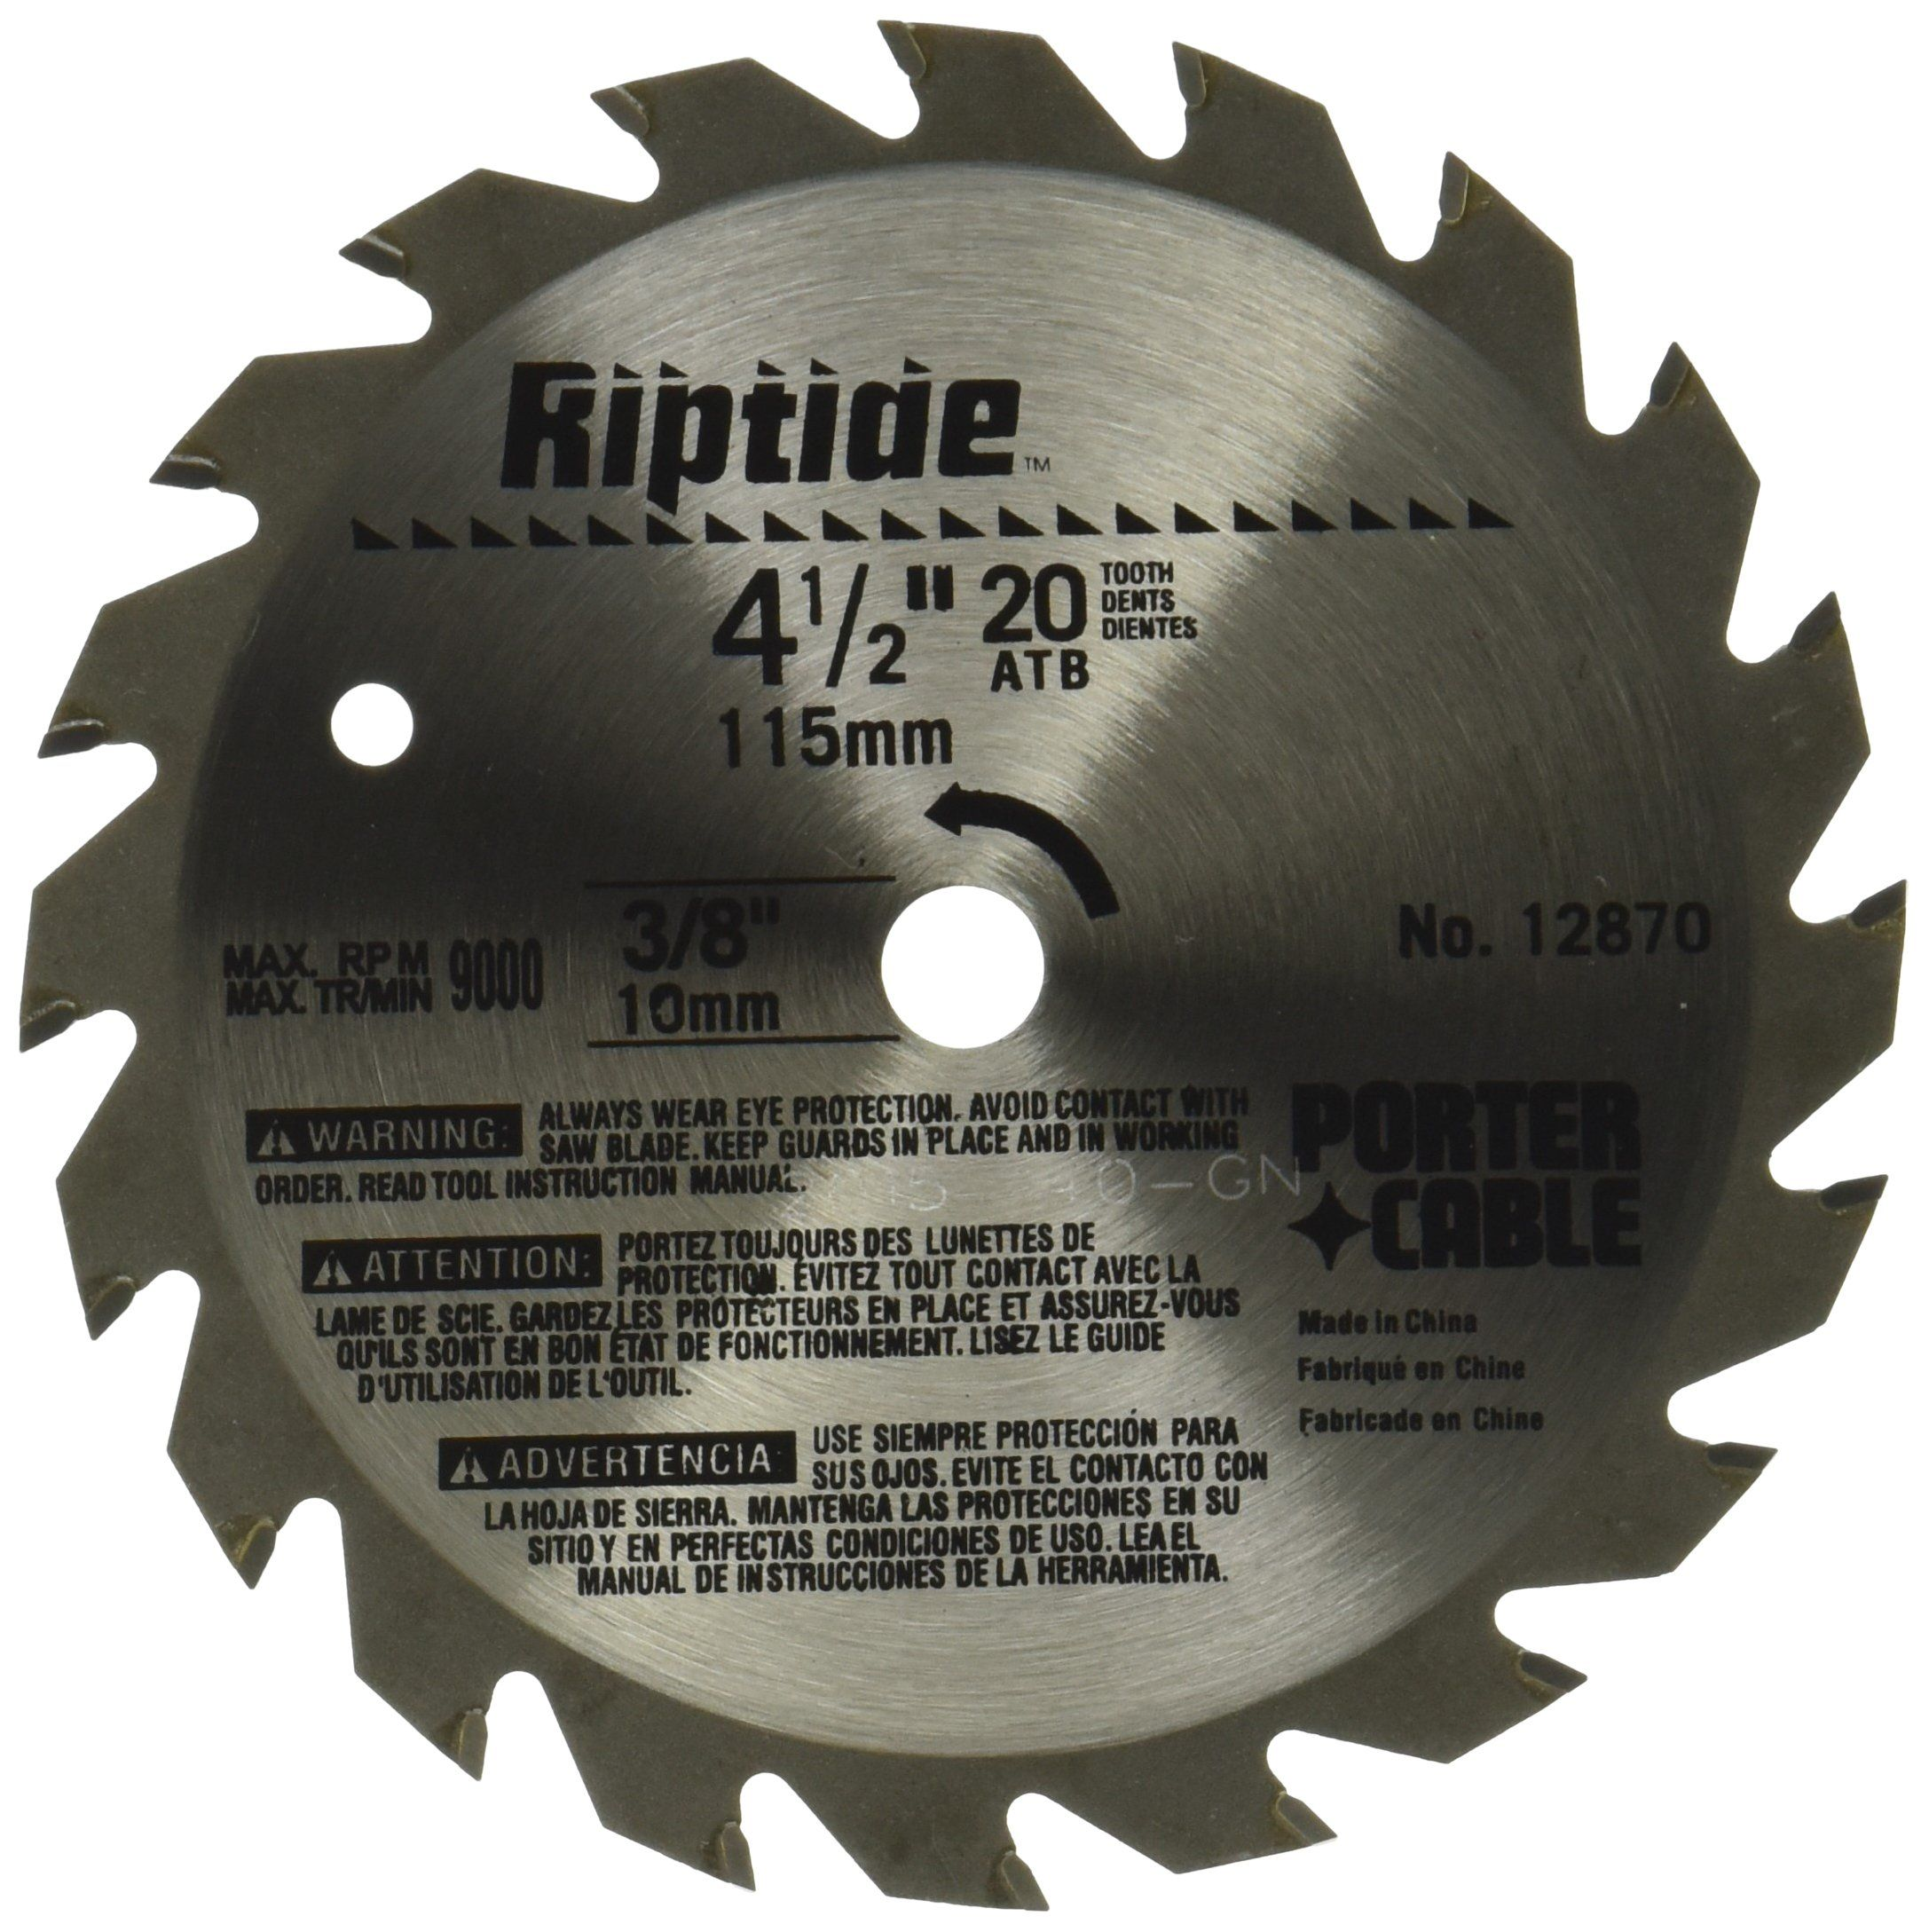 Portercable 12870 Riptide 41 2inch 20 Tooth Atb Thin Kerf General Purpose Saw Blade With 3 8inch Arbor You Could Locate More D In 2020 Porter Cable Saw Blade Blade